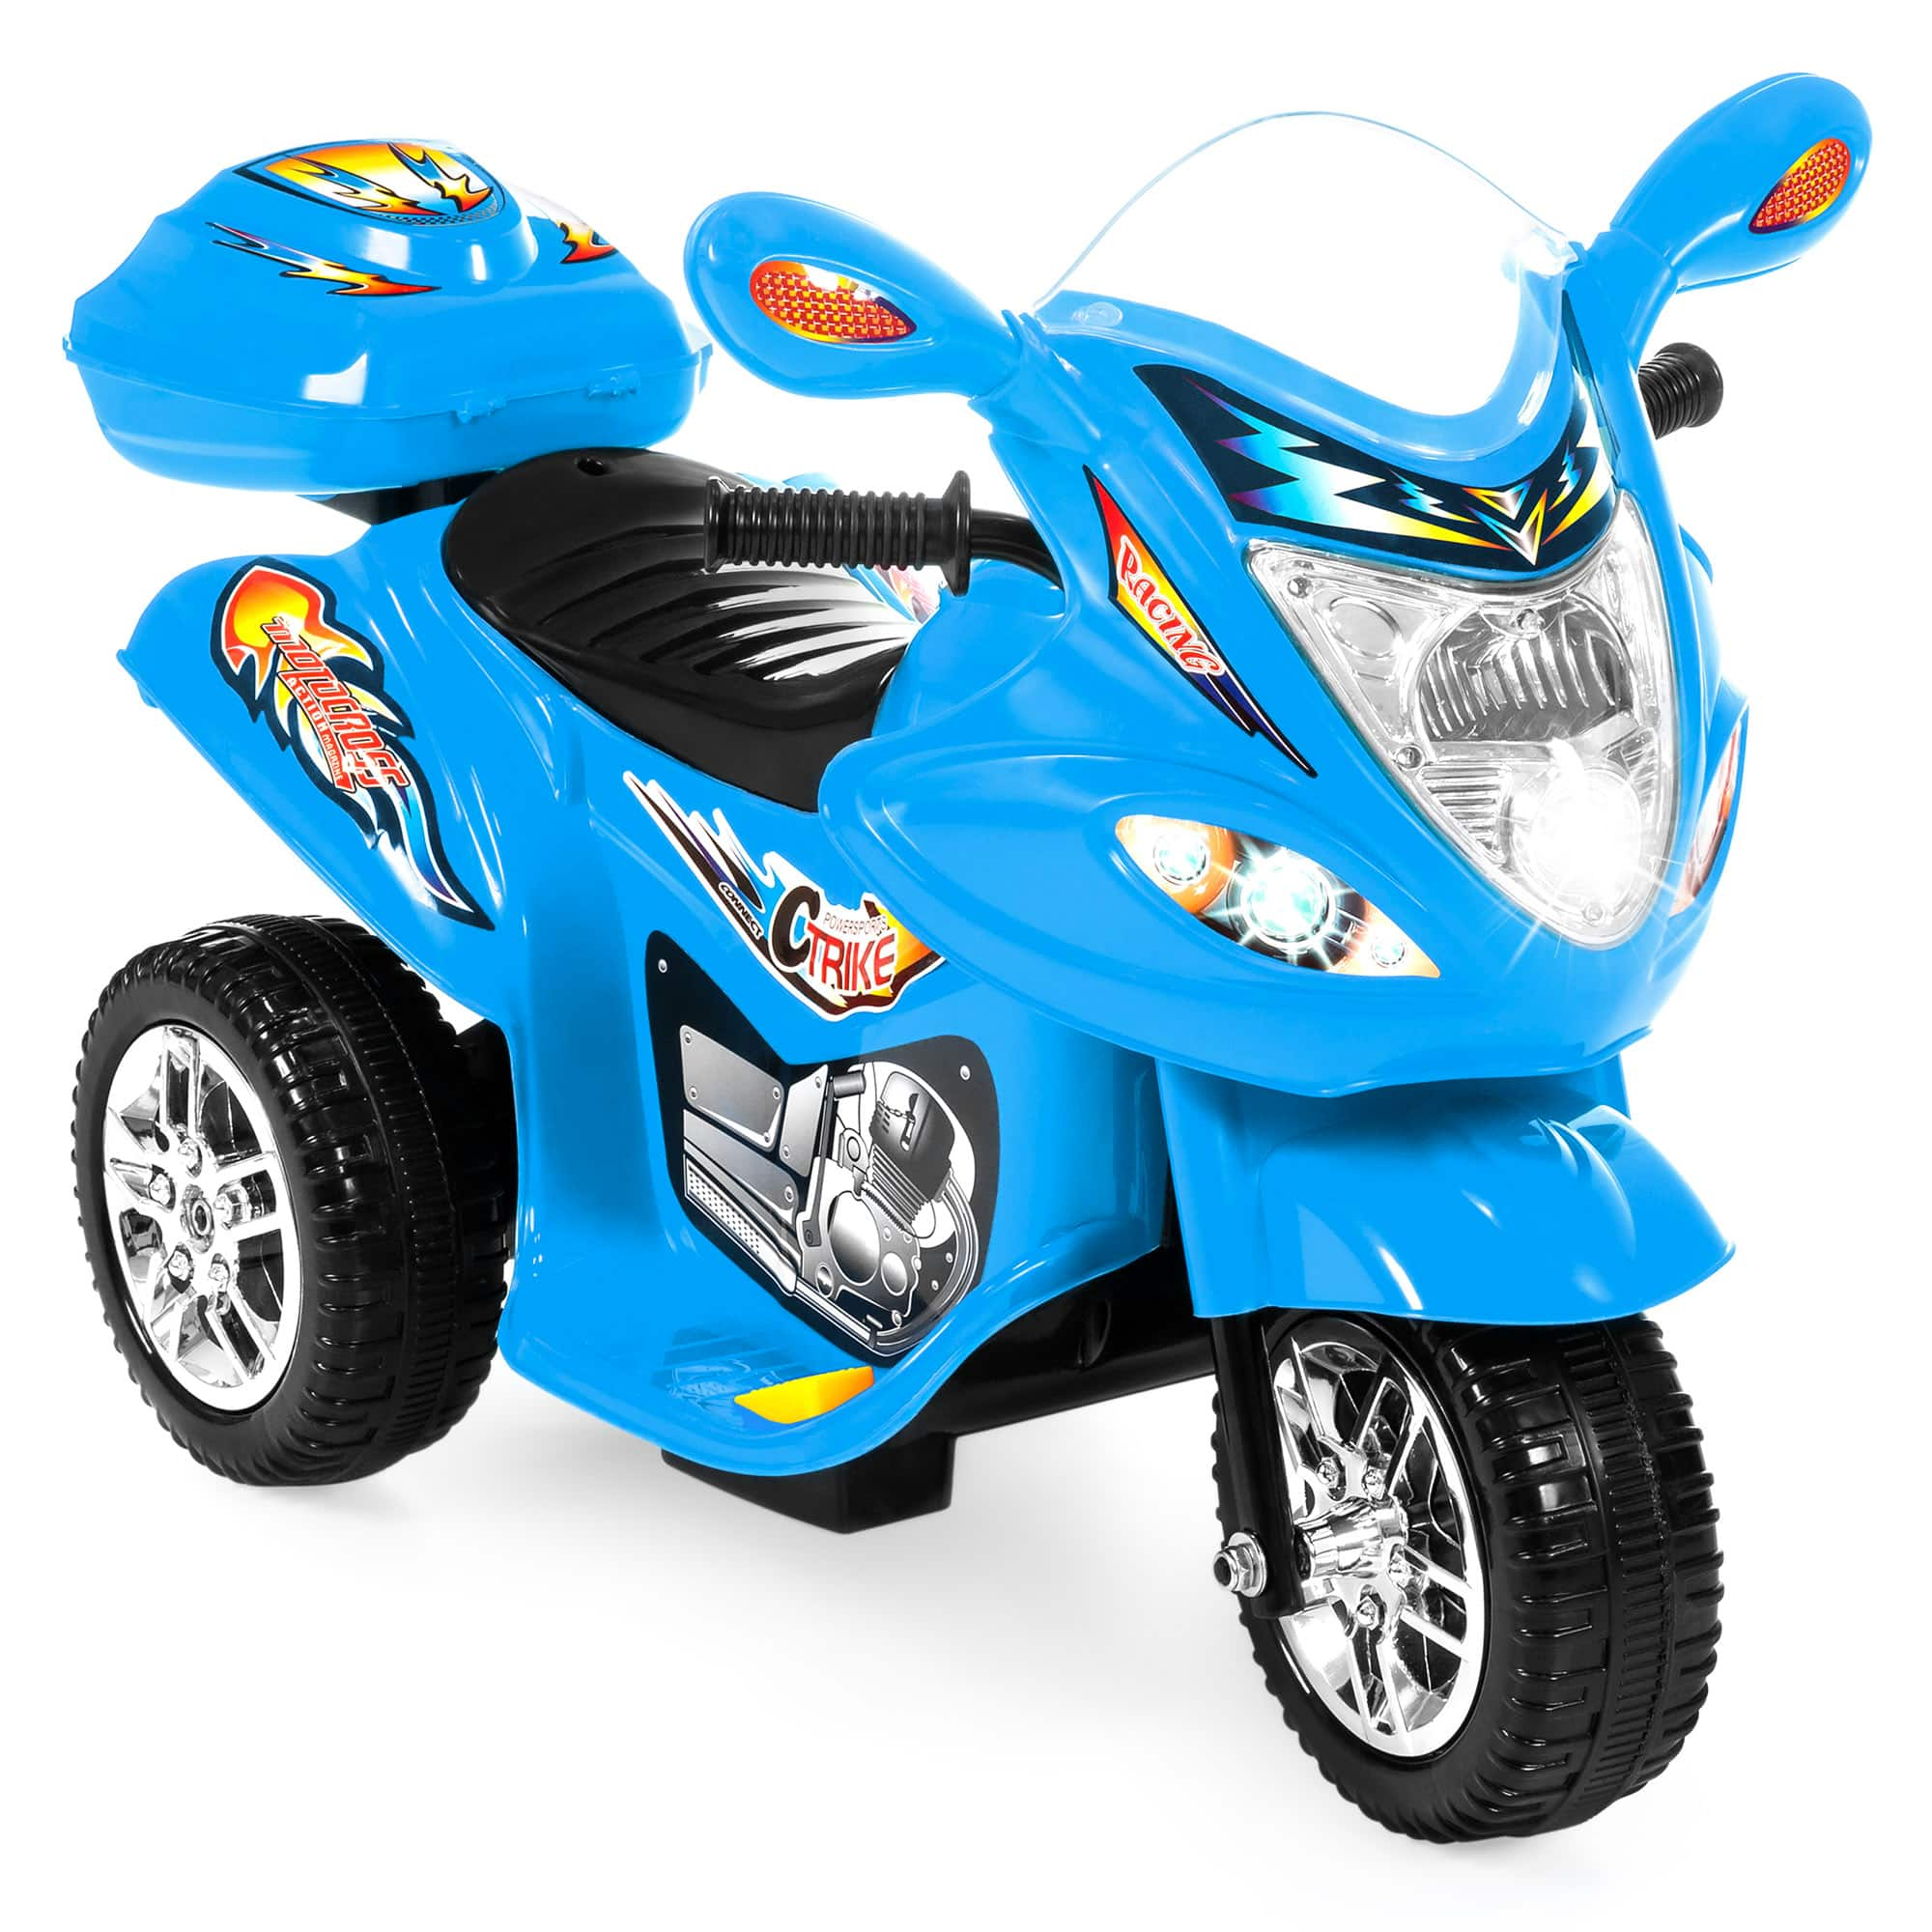 Best Choice Products 6V Kids Battery Powered 3-Wheel Motorcycle Ride On Toy w/ LED Lights, Music, Horn $57.99